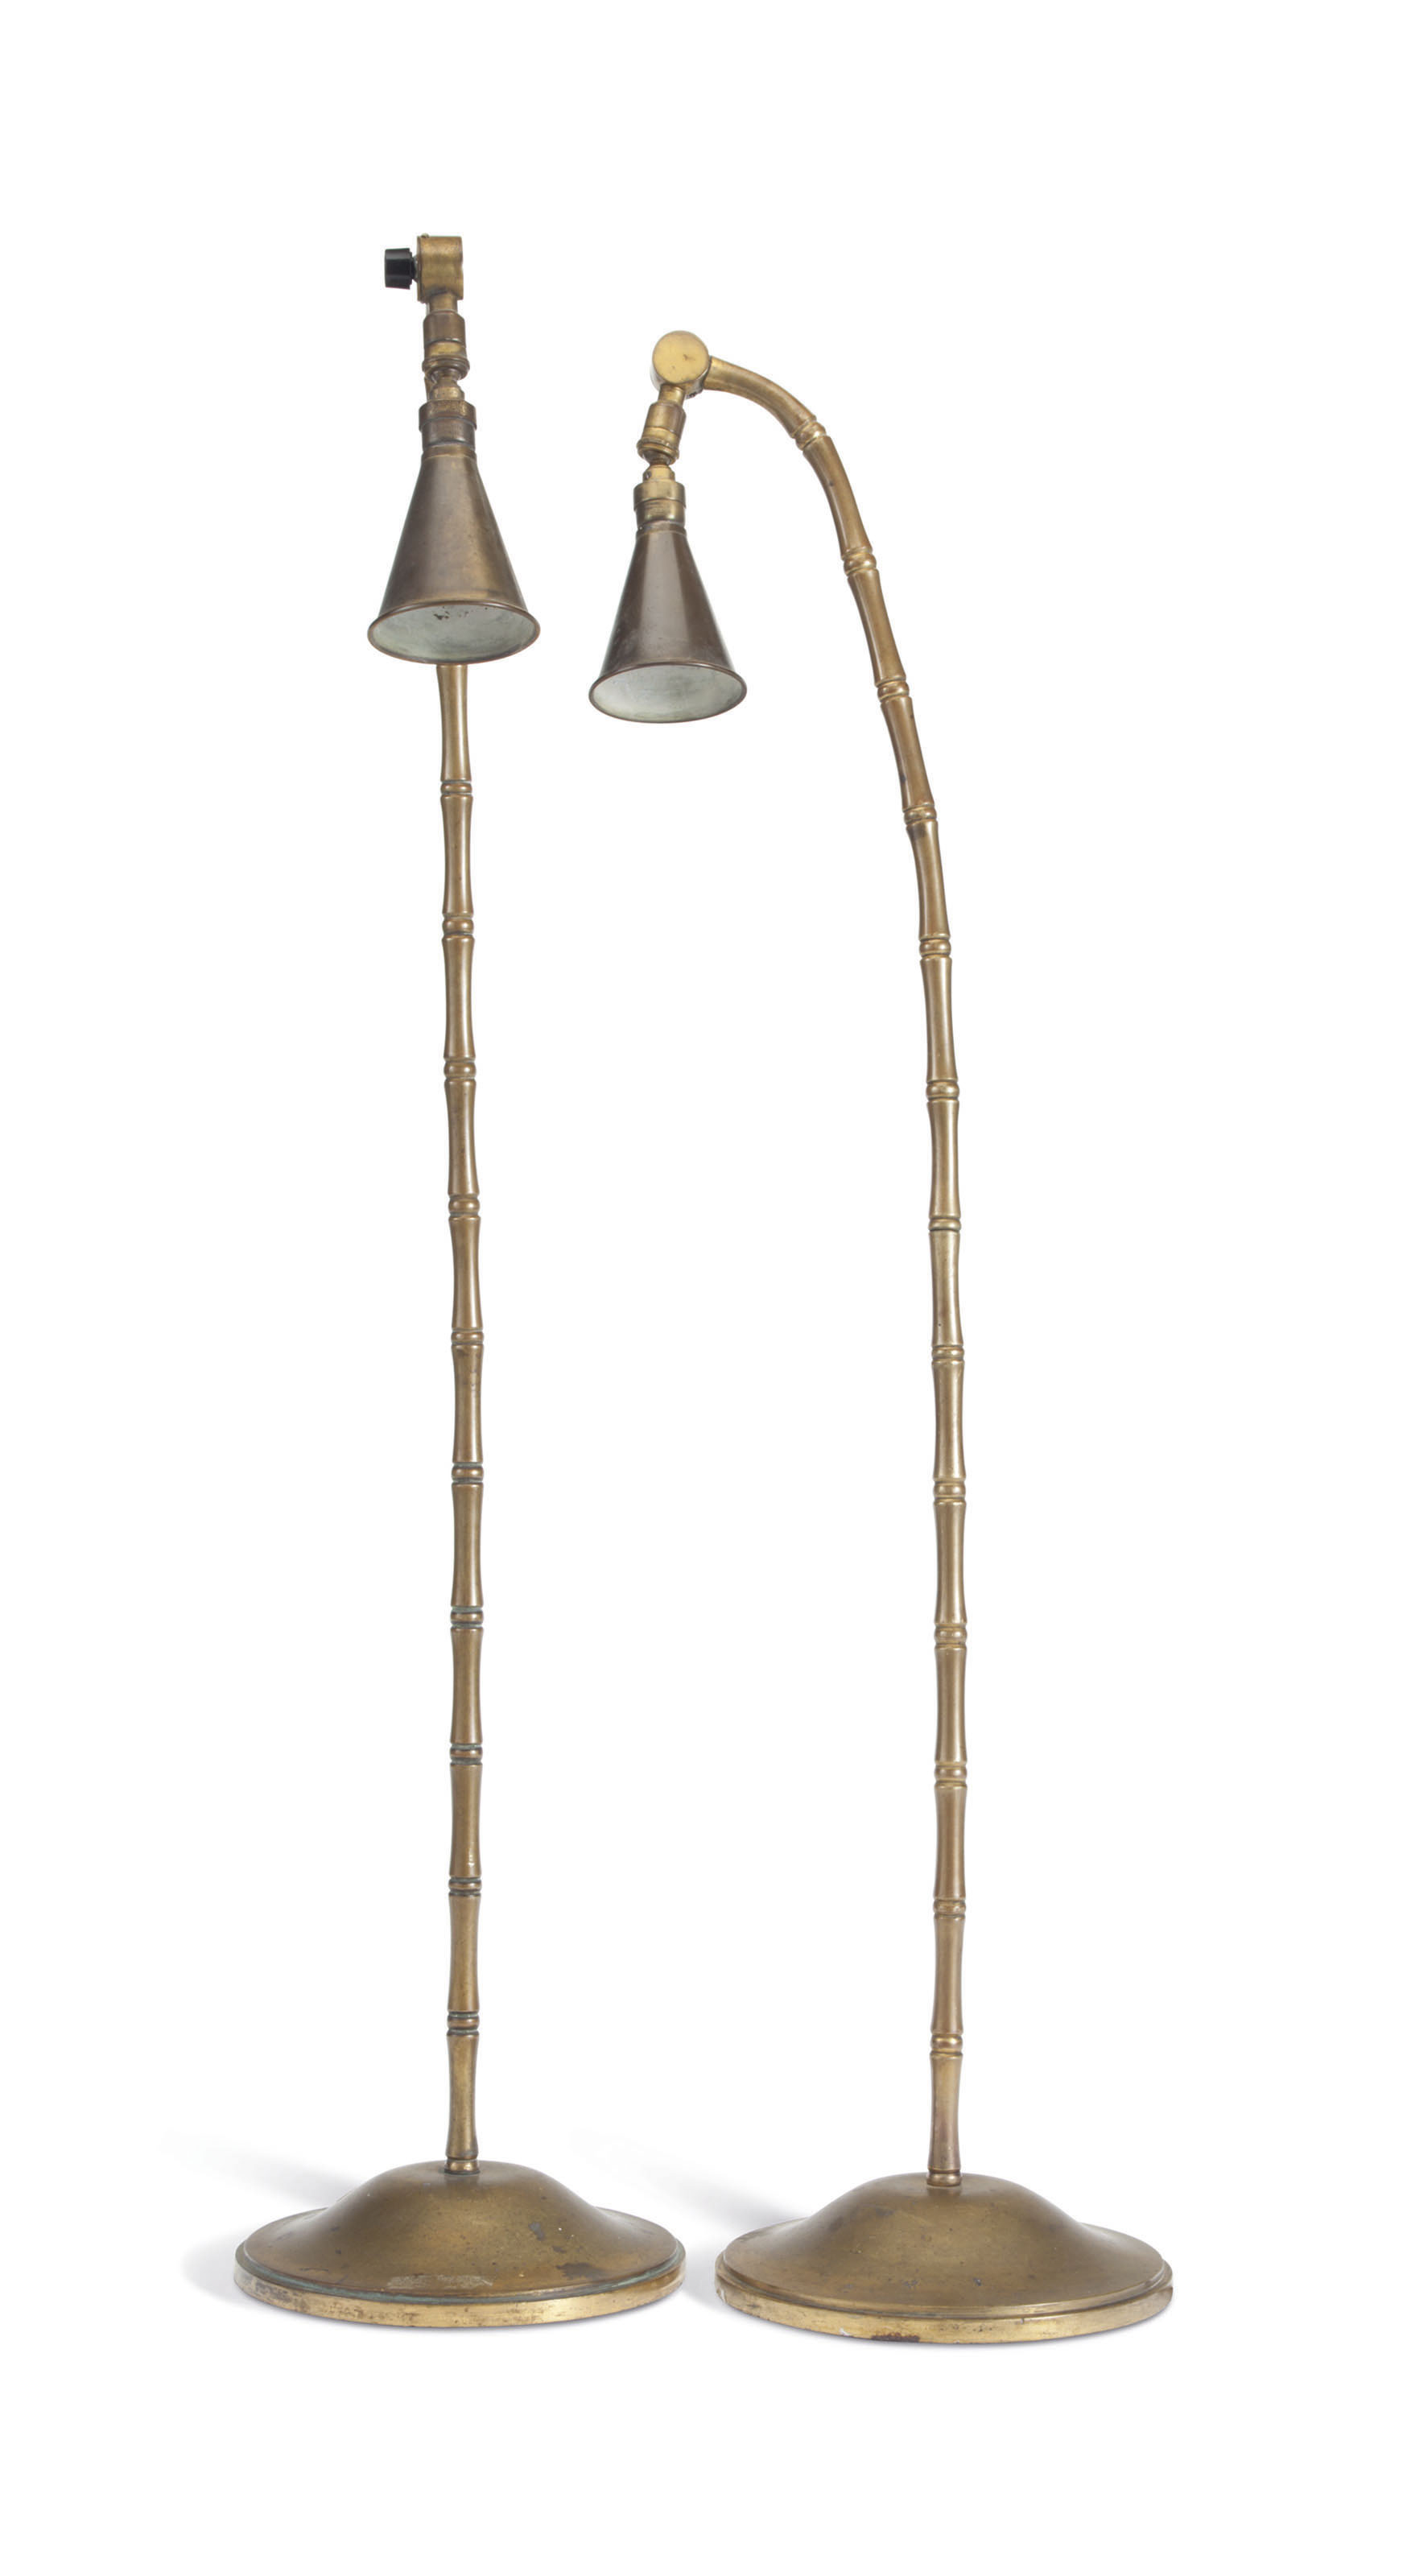 A PAIR OF FRENCH CAST-BRASS LA